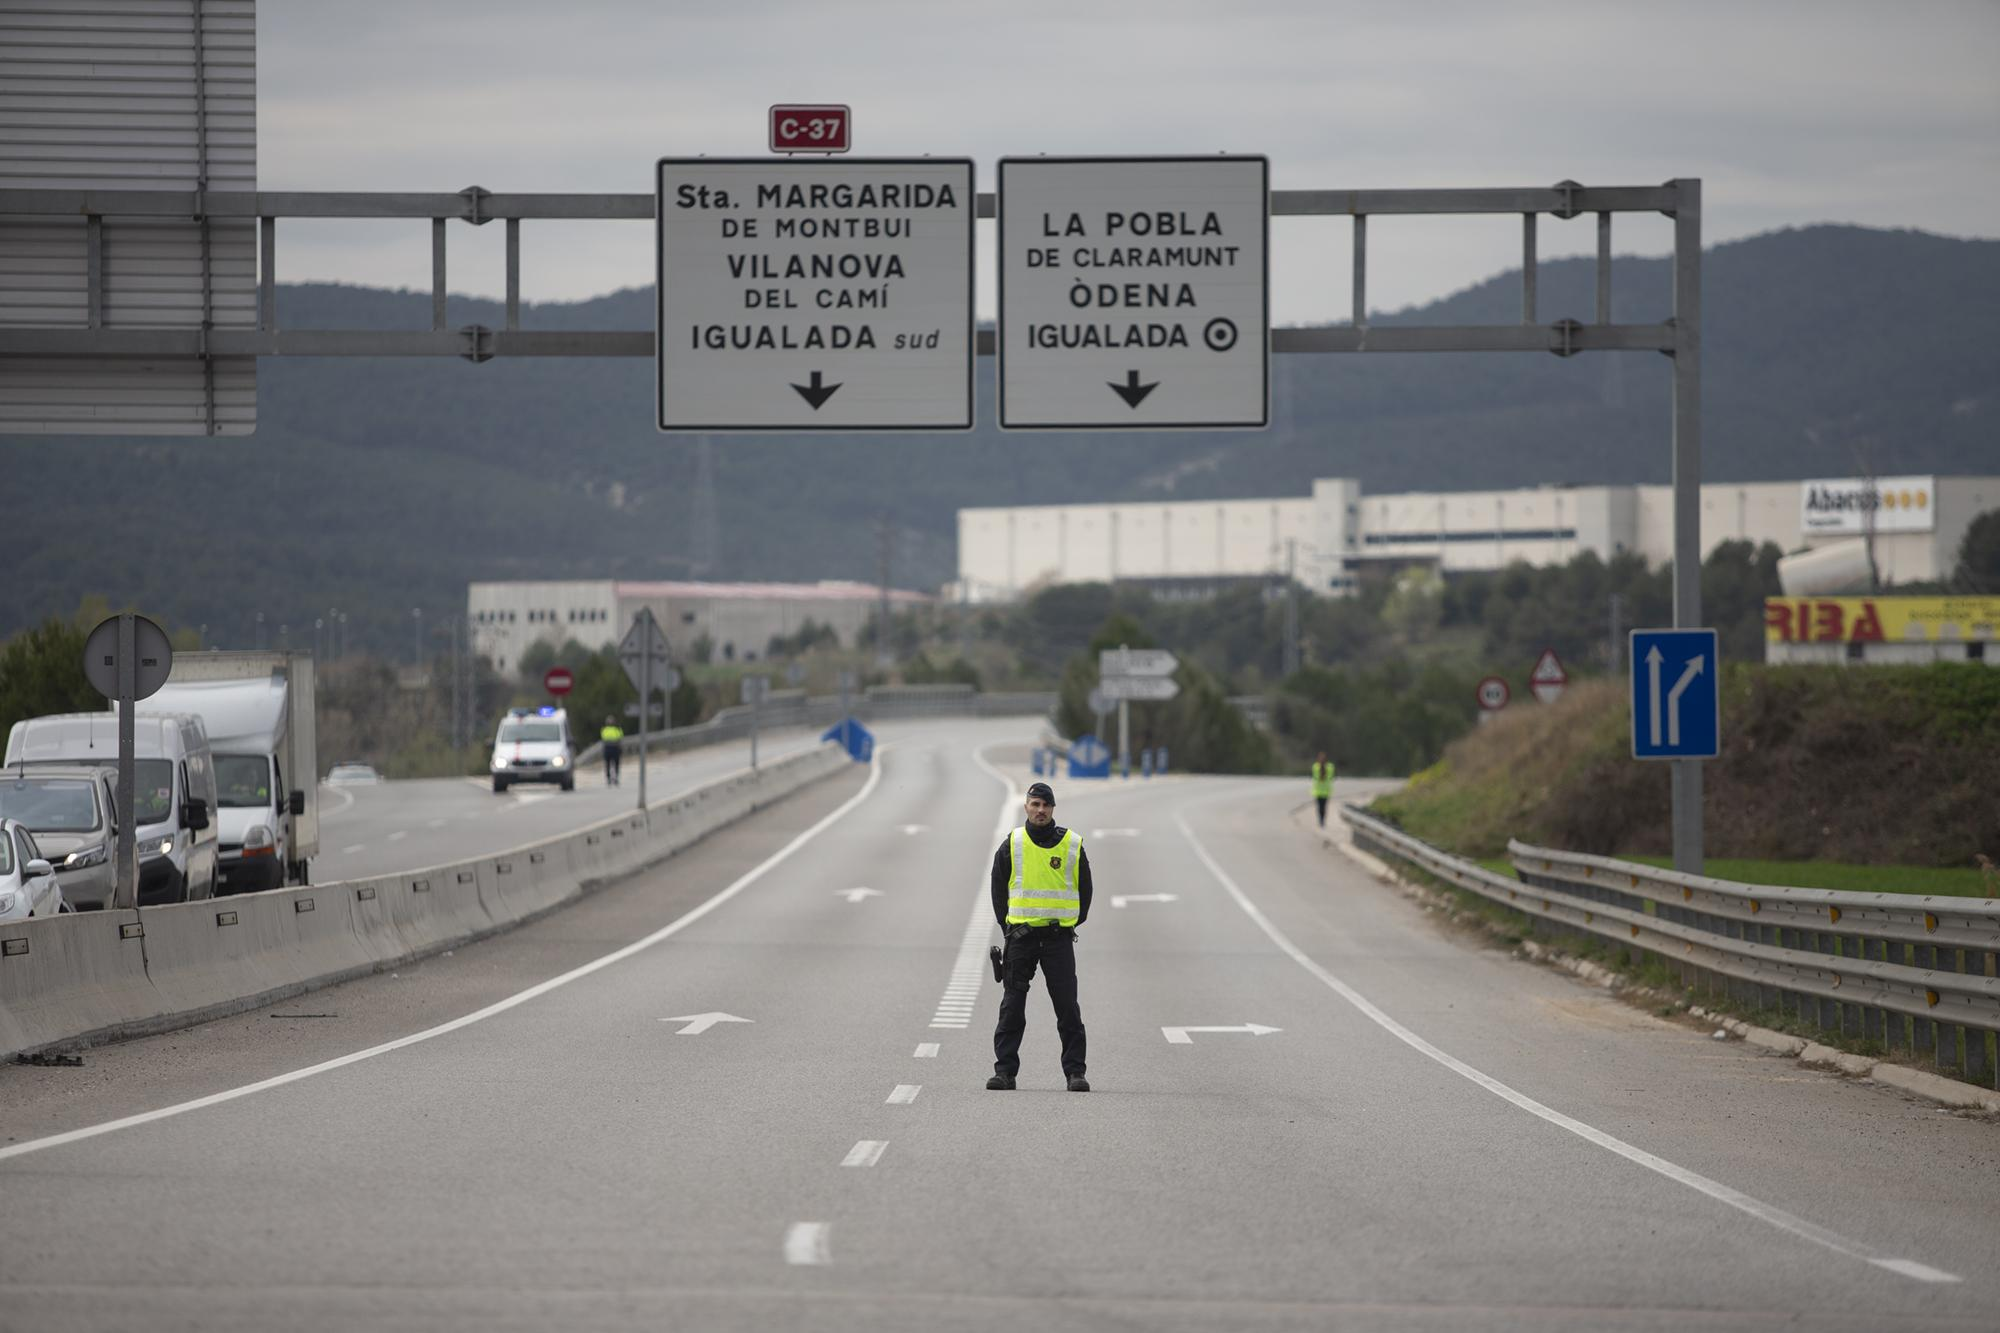 A mosso de esquadra police officer stands on the closed off road near Igualada, Spain, Friday, March 13, 2020. Over 60,000 people awoke Friday in four towns near Barcelona confined to their homes and with police blocking roads. The order by regional authorities in Catalonia is Spain's first mandatory lockdown as COVID-19 coronavirus infections increase sharply, putting a strain on health services and pressure on the government for more action.  (AP Photo/Joan Mateu)